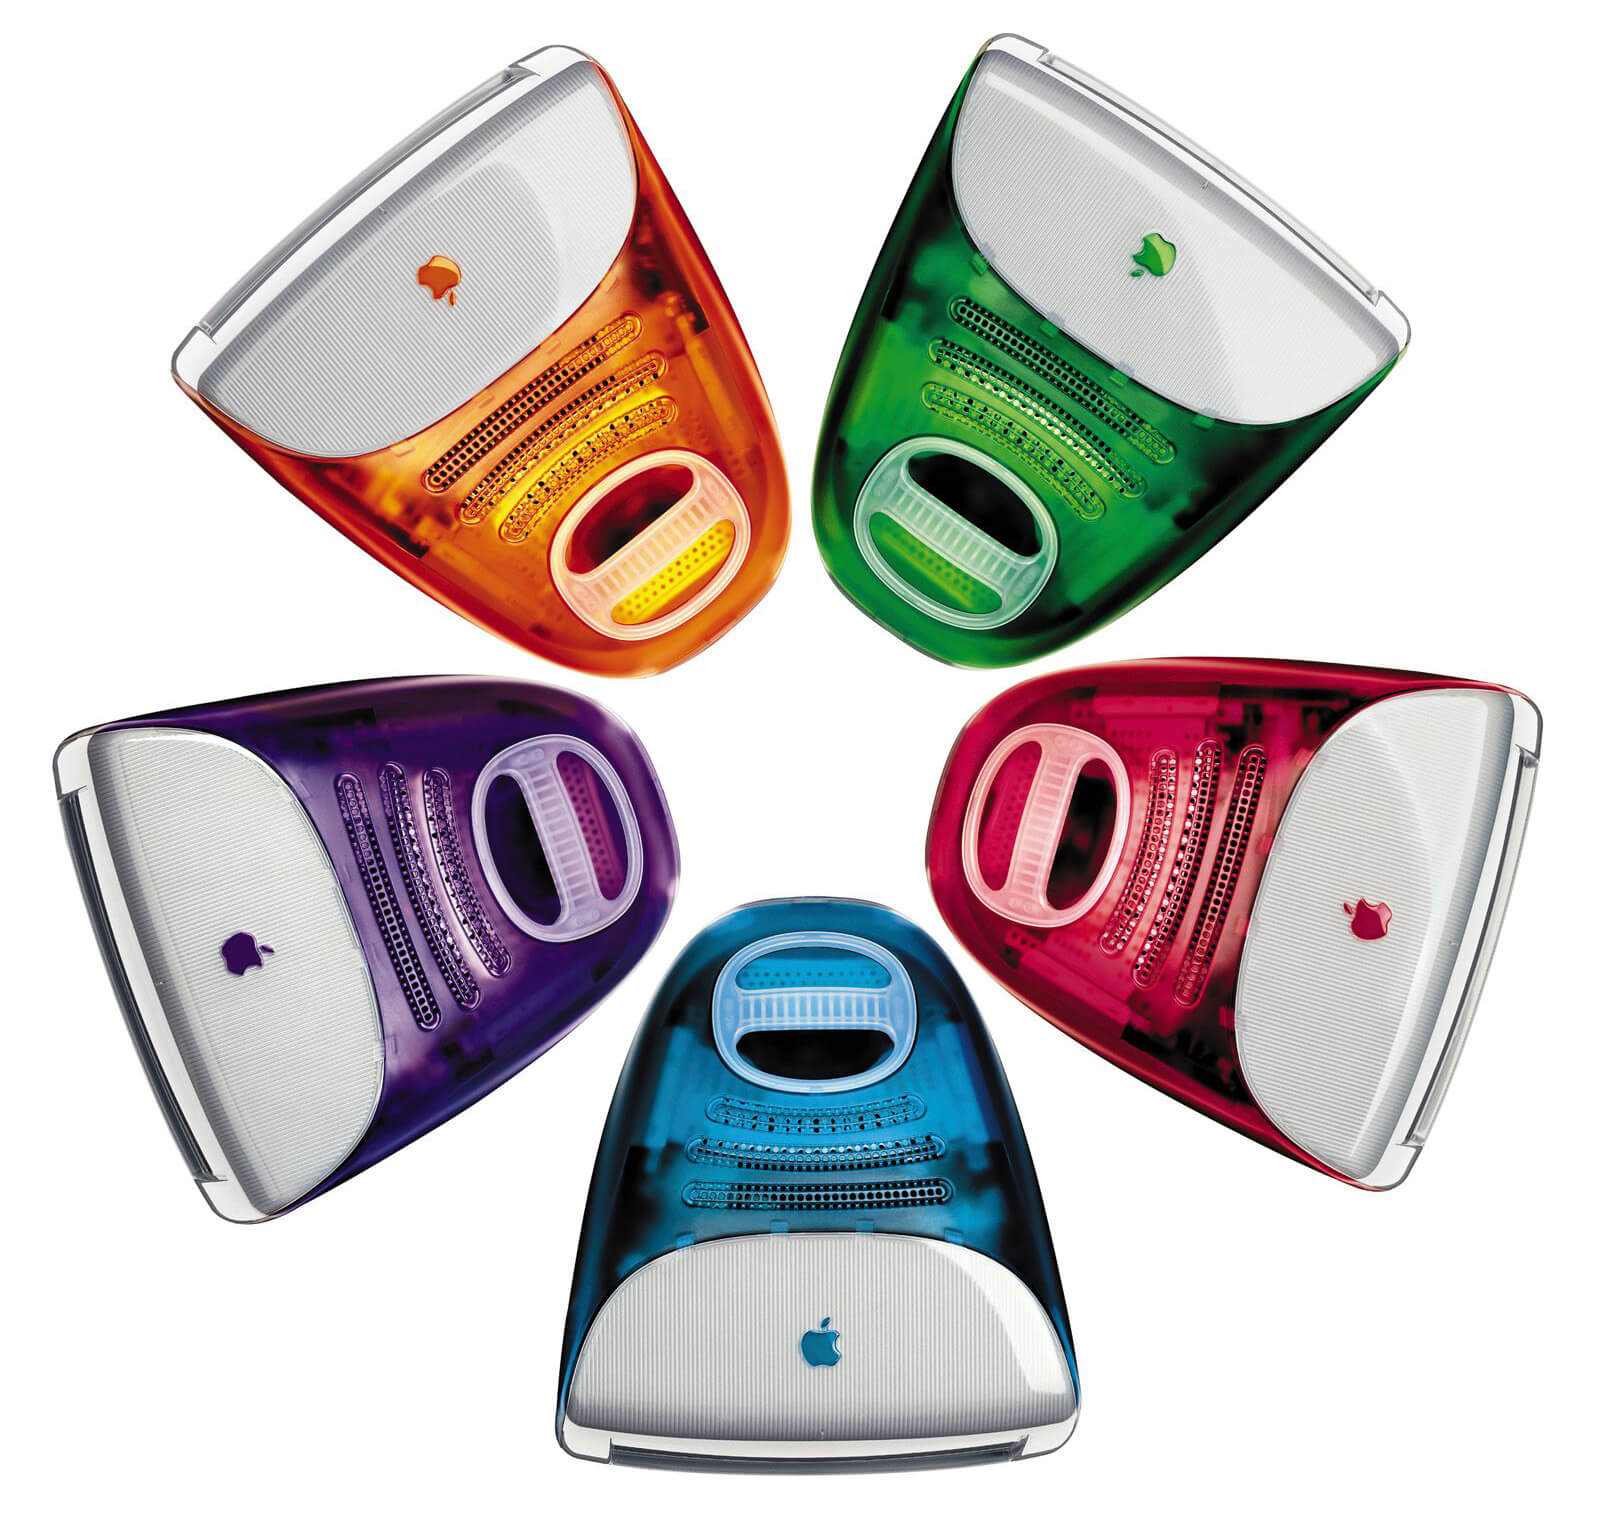 The first iMac G3, with its range of five colours and translucid backpiece, was a bestseller | Digital Legacies | Julius Wiedemann | STIRworld